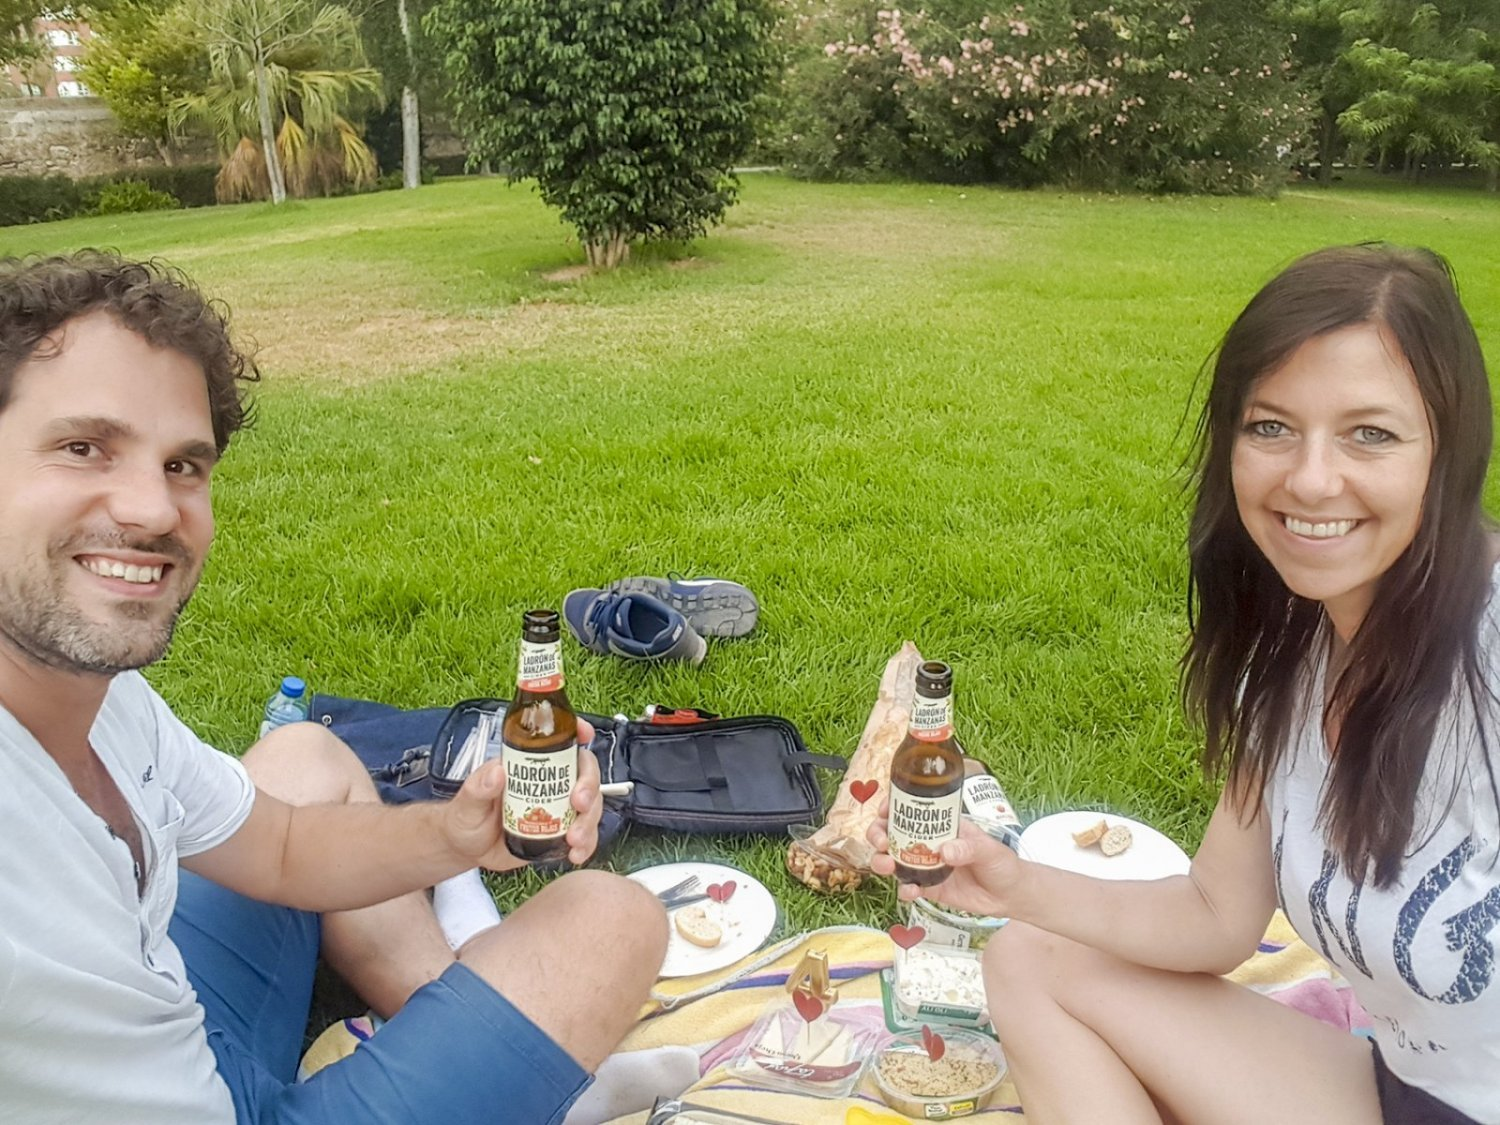 Picknicken in Jardin del Turia in Valencia